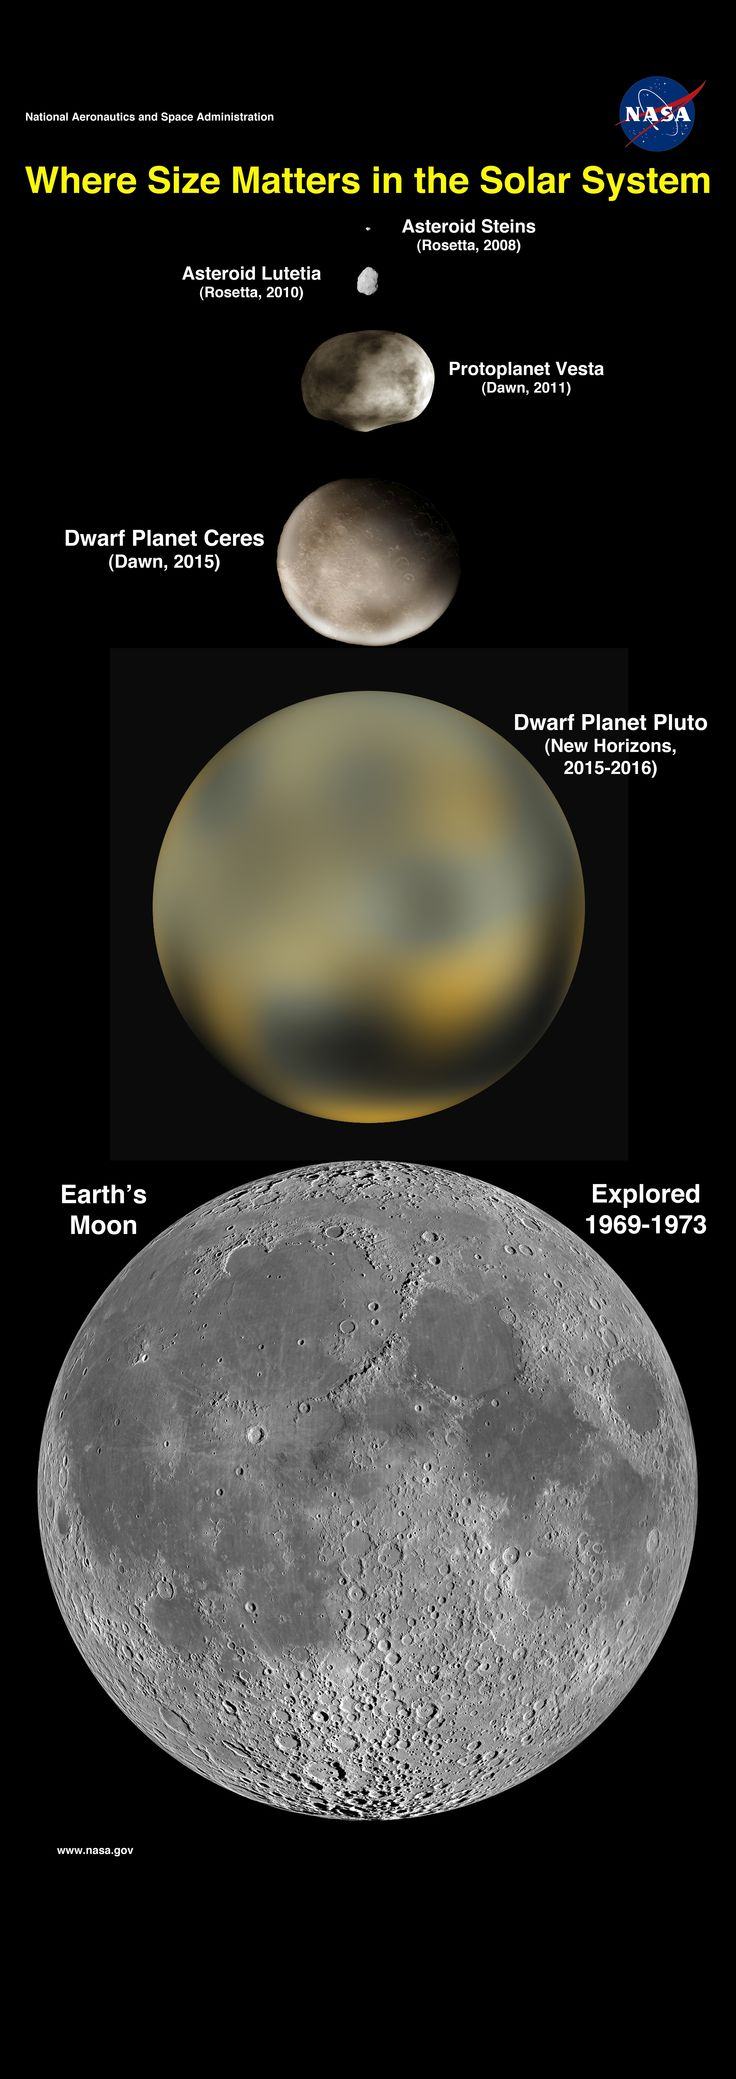 Where Size Matters in Our Solar System